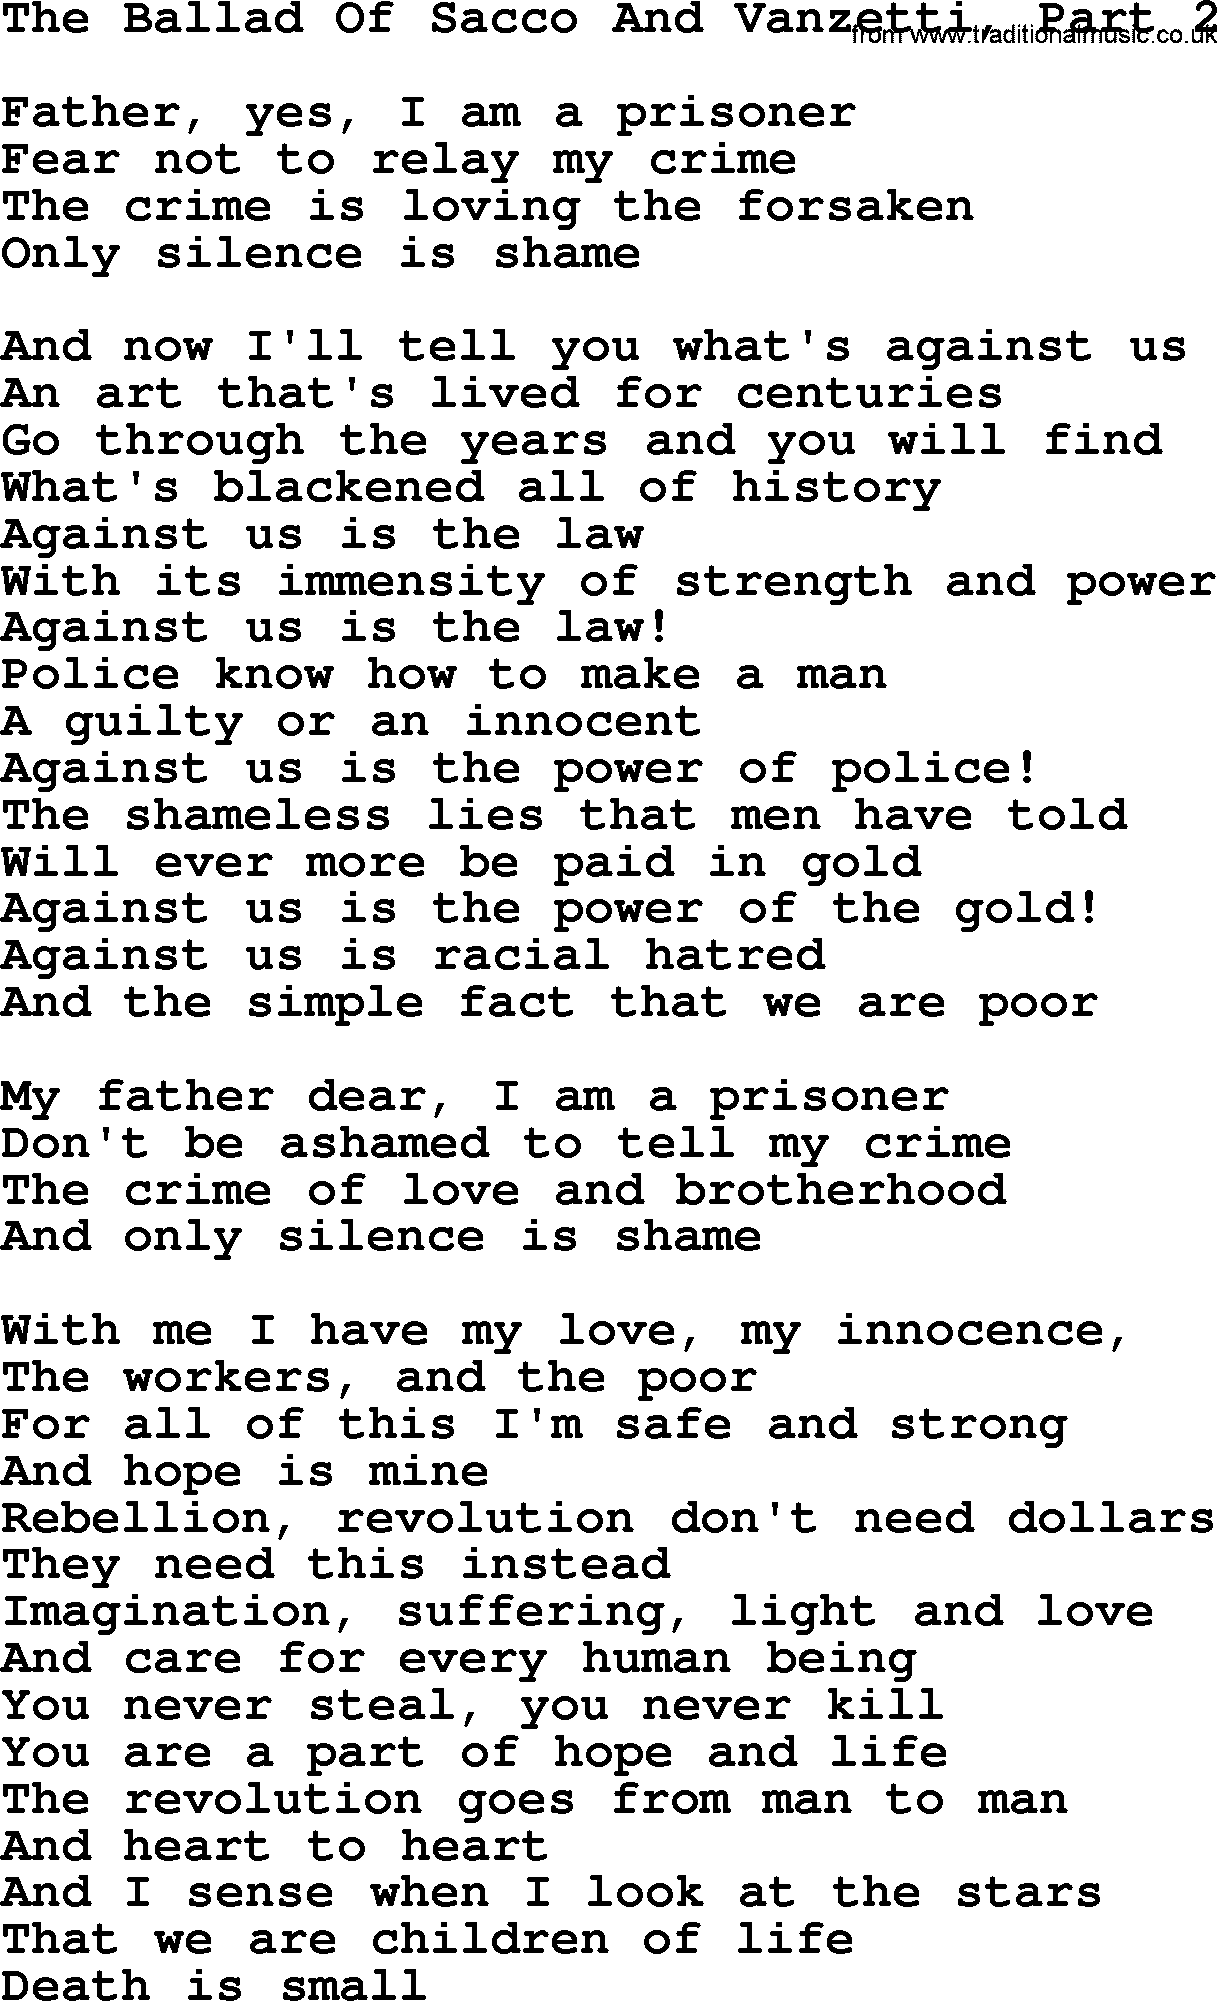 Joan Baez song - The Ballad Of Sacco And Vanzetti, Part 2